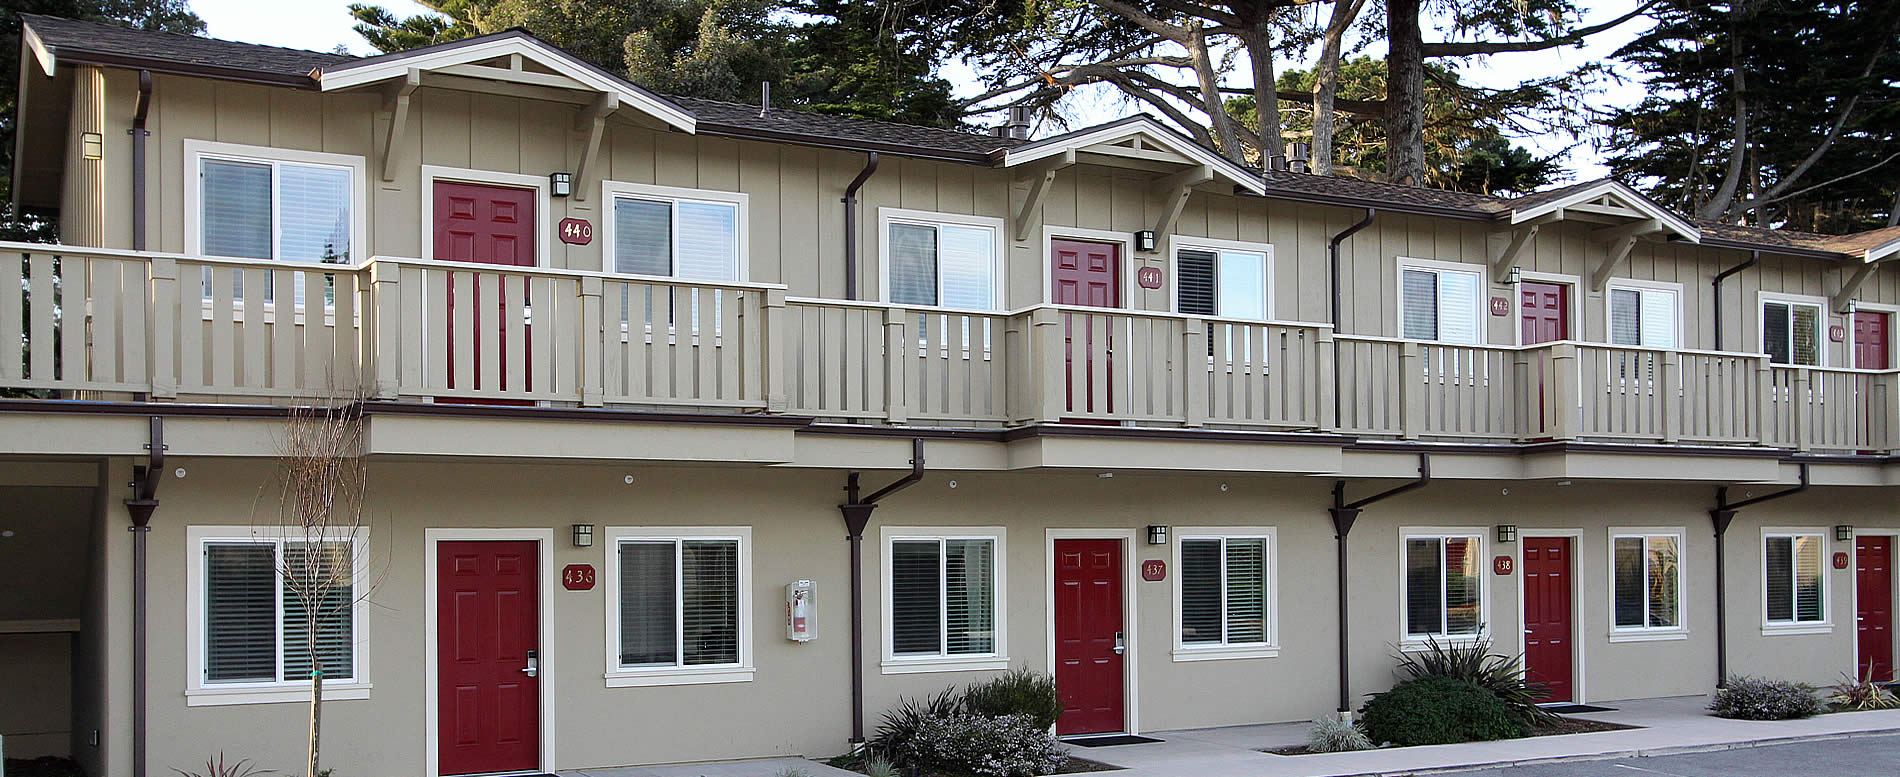 Pacific Grove Hotel - exterior with burgundy doors